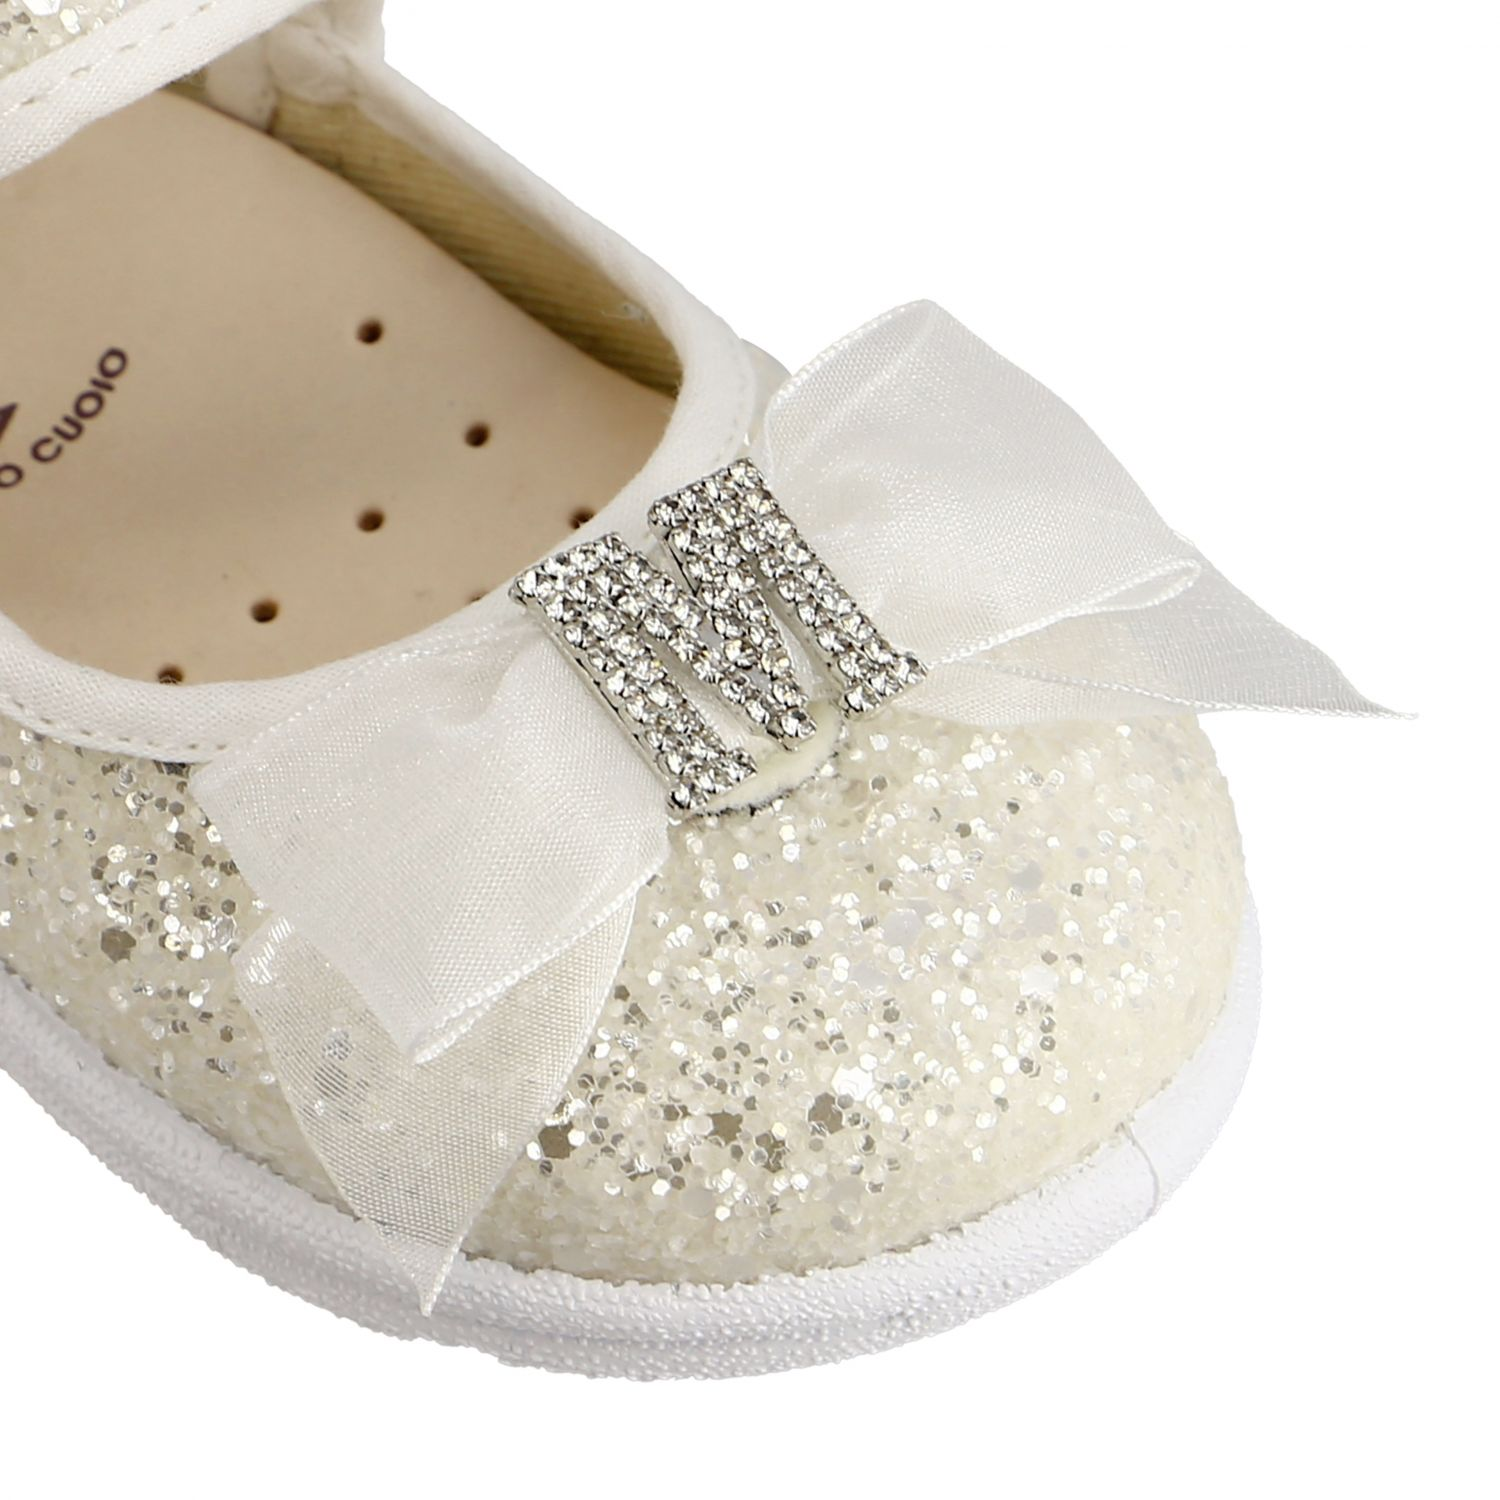 Monnalisa ballet flats in glitter fabric with bow and rhinestones white 4